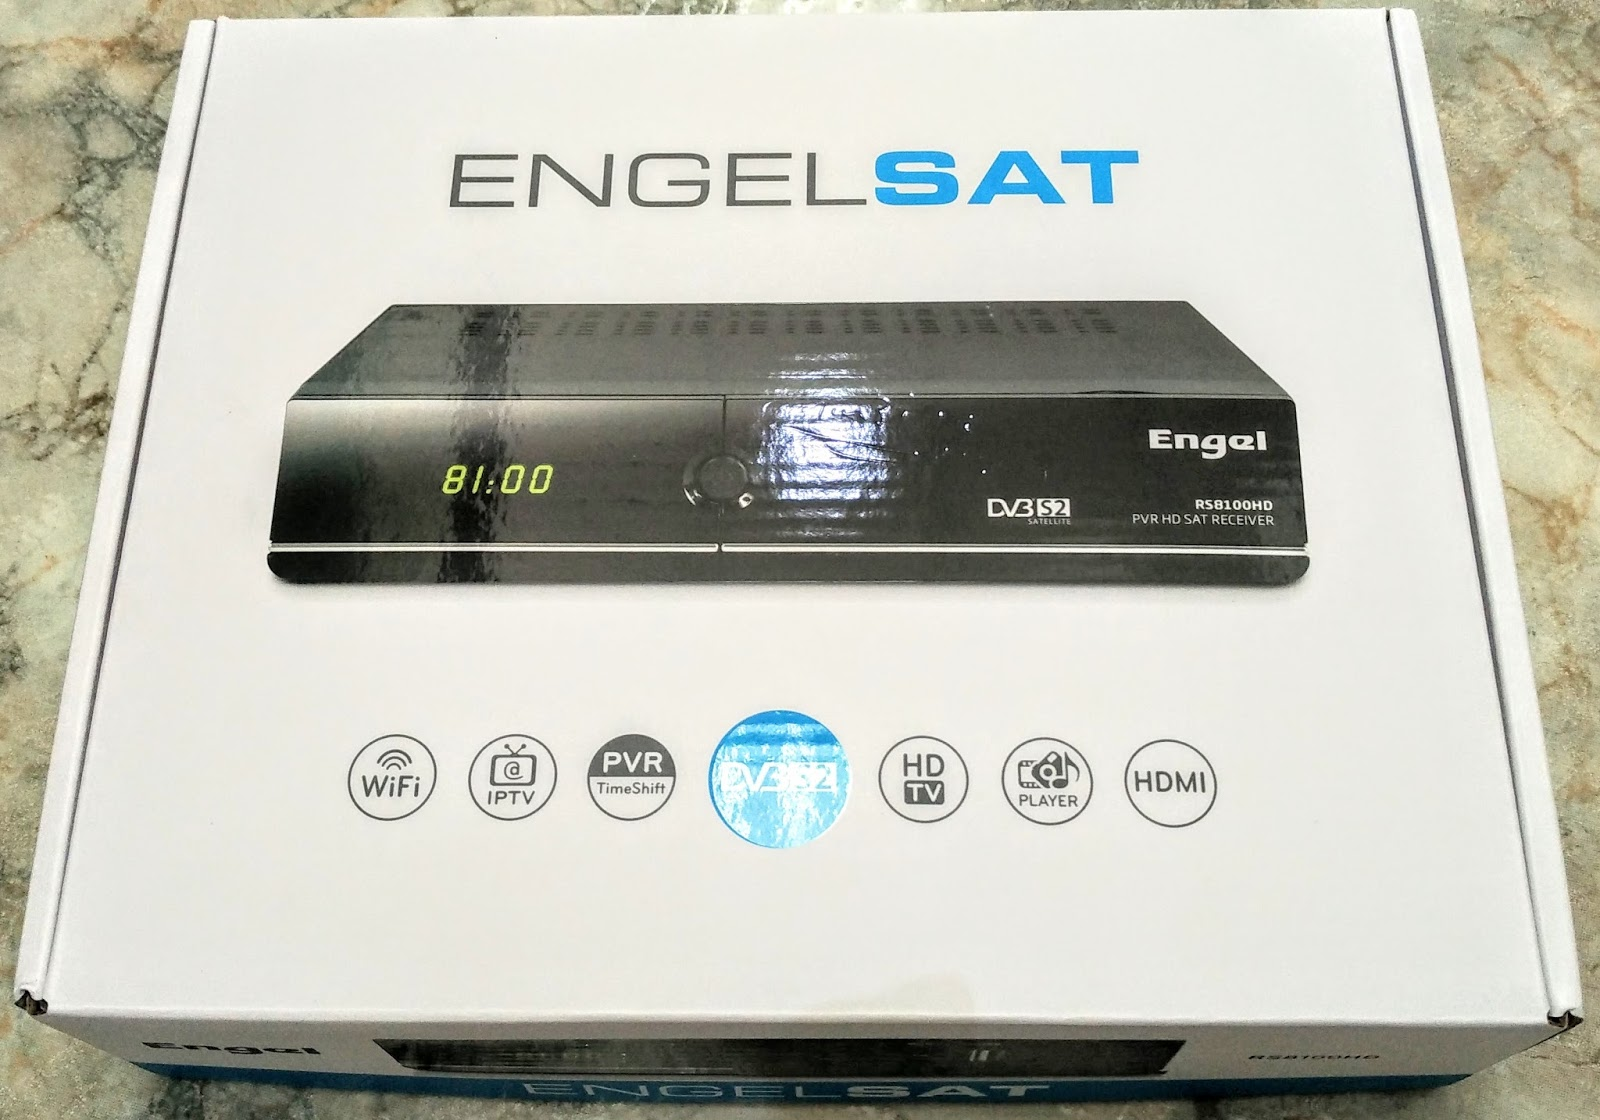 Jfulgen blog engel rs8100hd actualizar firmware - Engel rs8100hd carrefour ...